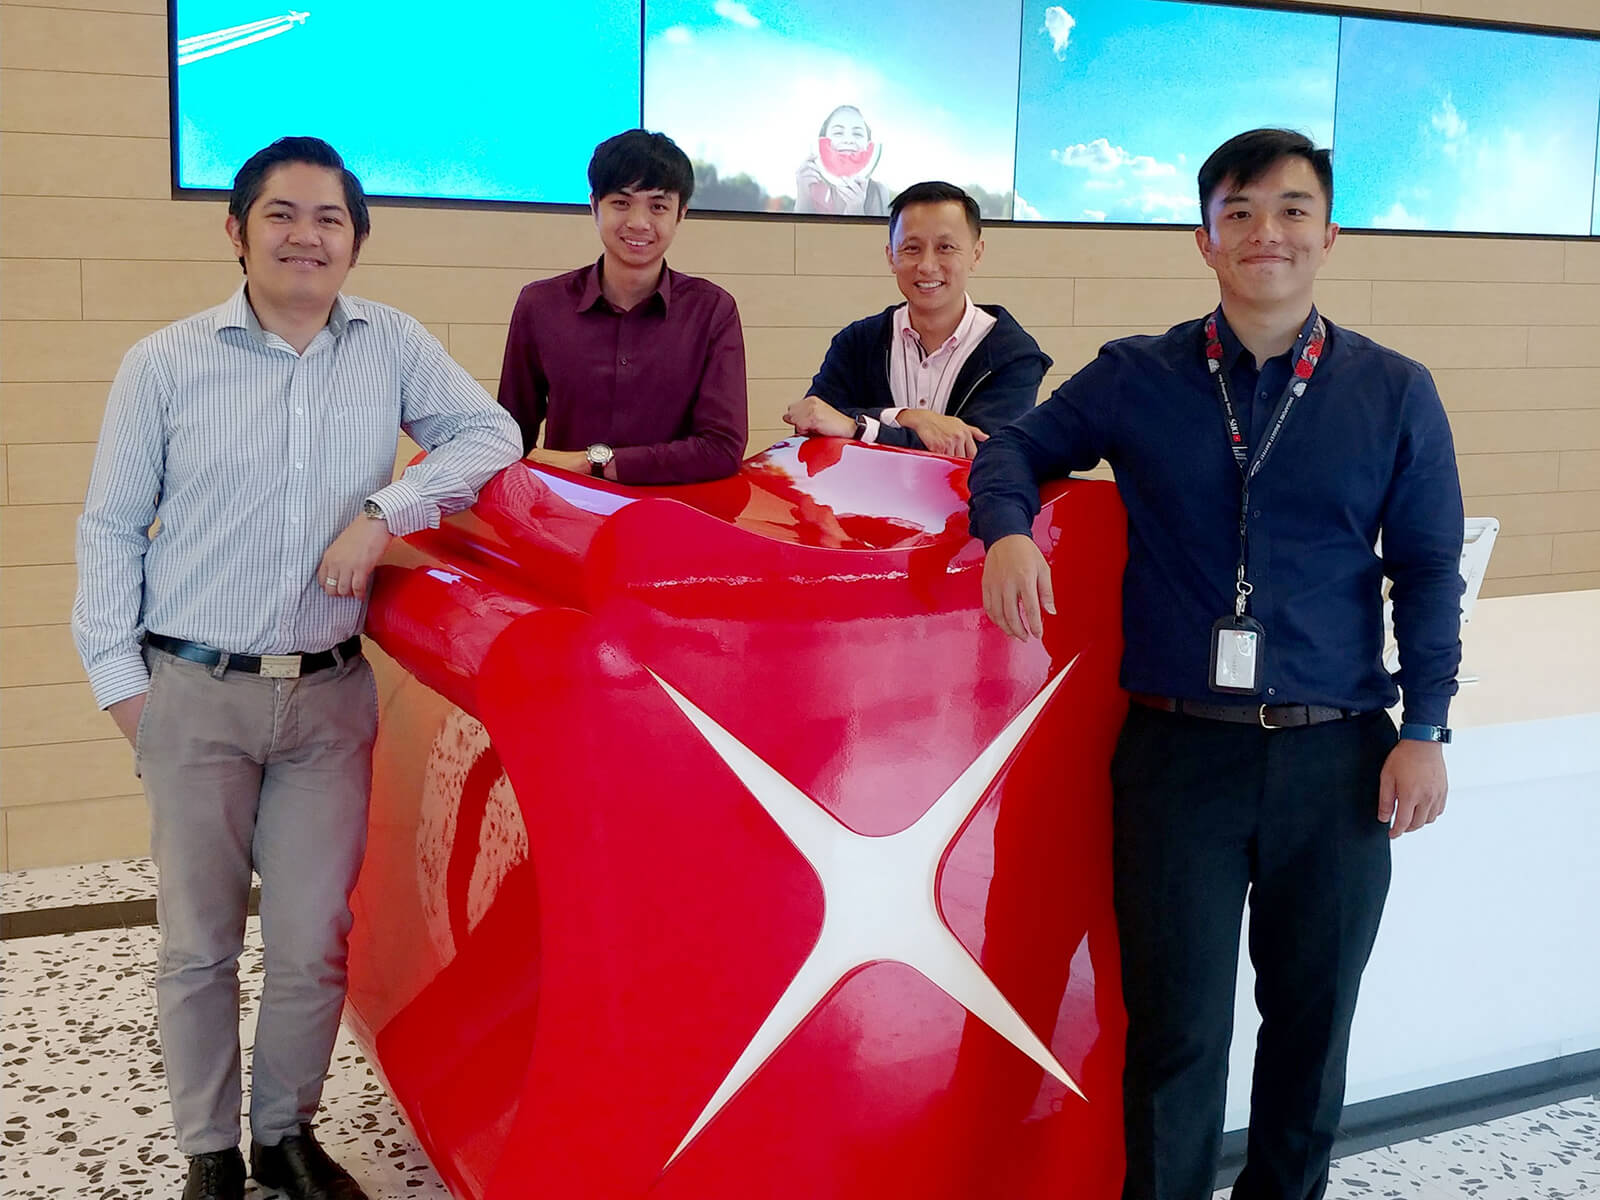 DigiPen Singapore alumni Izak Foong and Farris Chua pose with co-workers in DBS Bank lobby